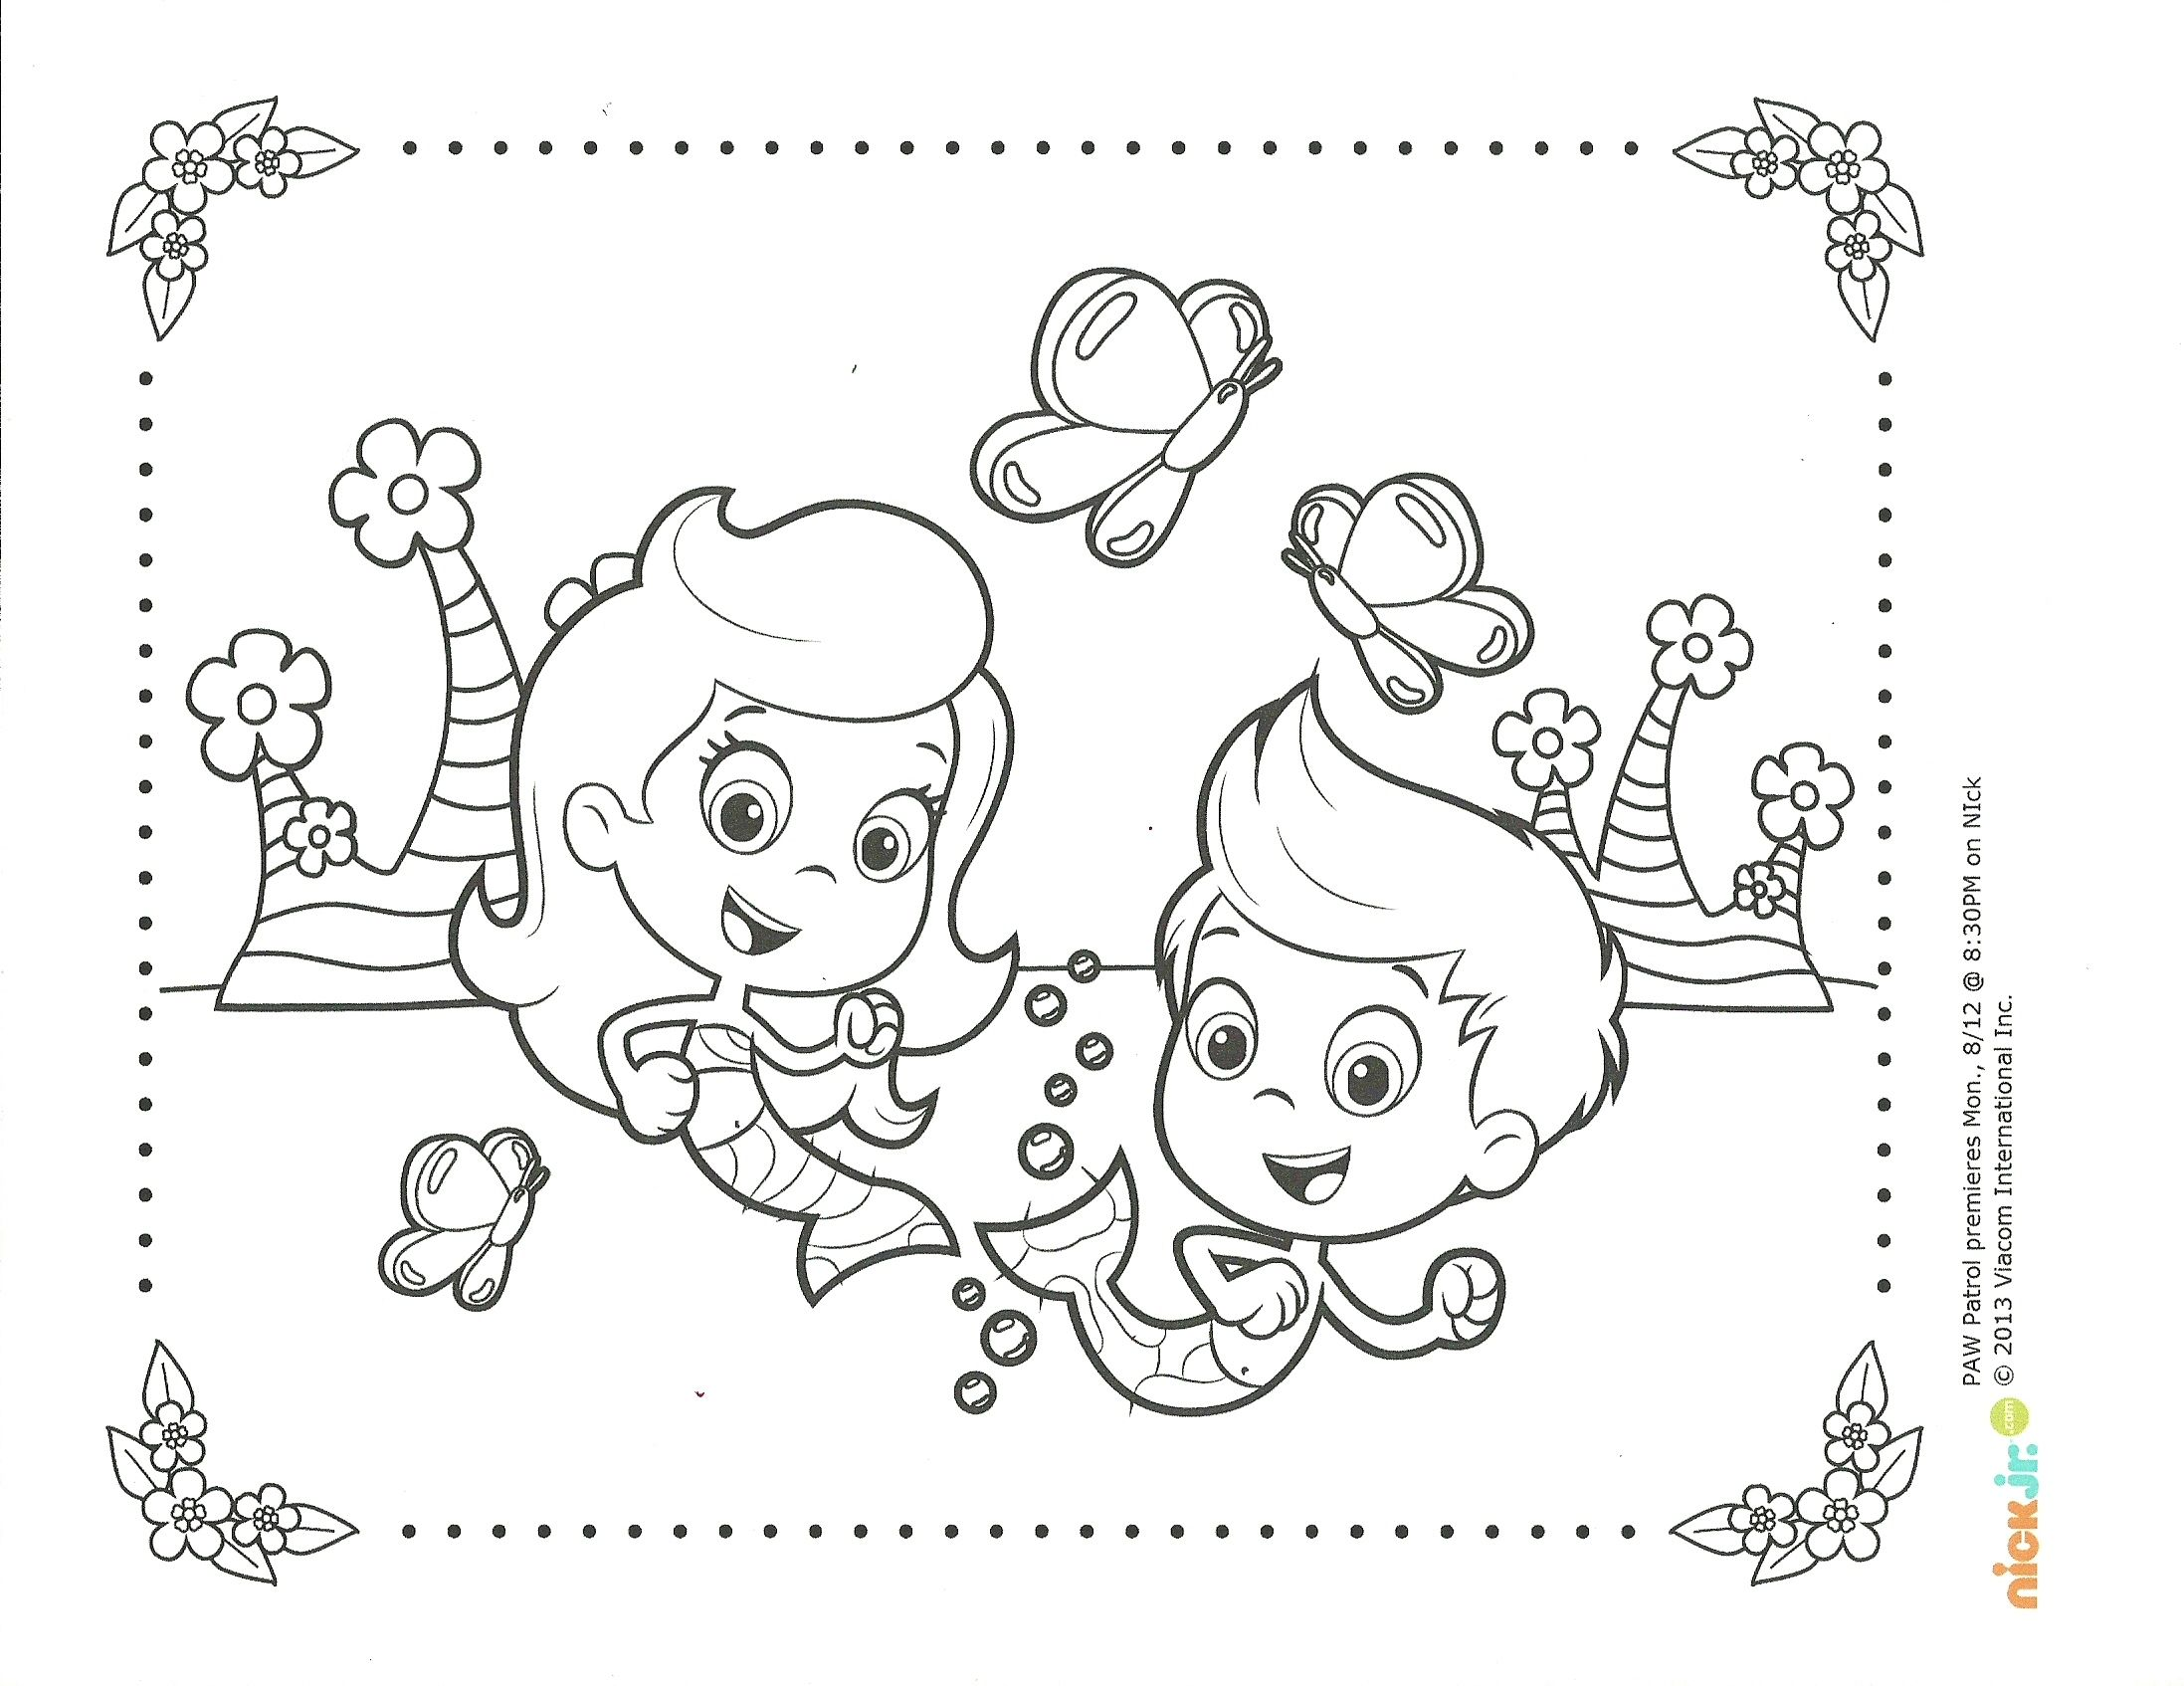 Bubble Guppies Springtime Coloring Page | Teaching Taylor ...